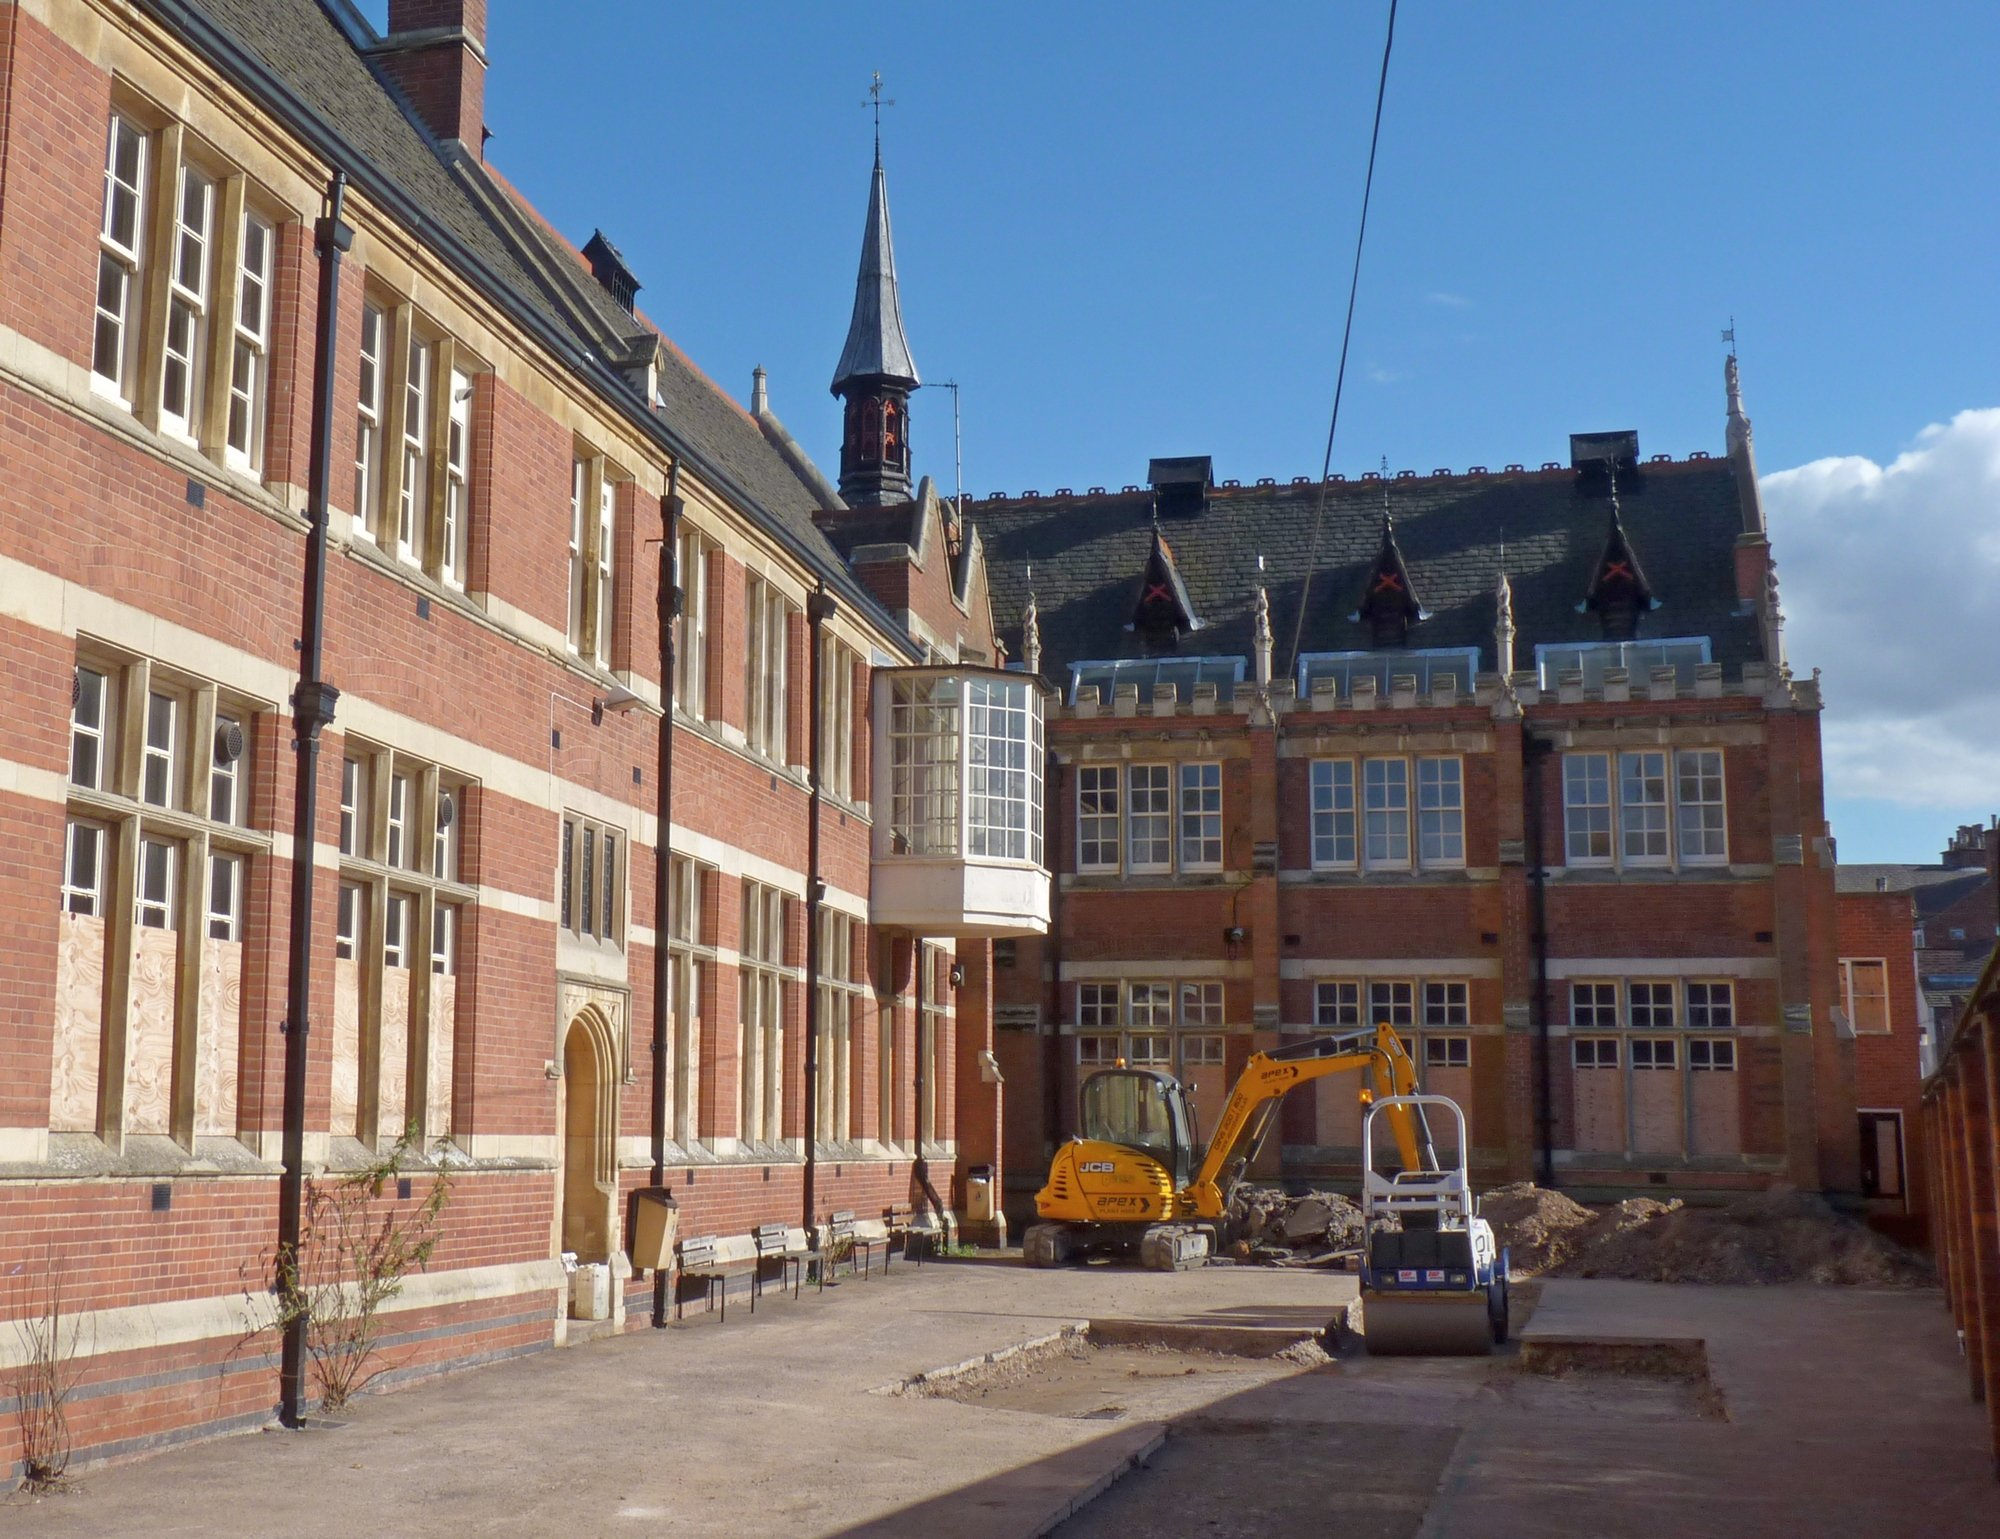 Greyfriars Project, Richard III archaeology dig, Leicester